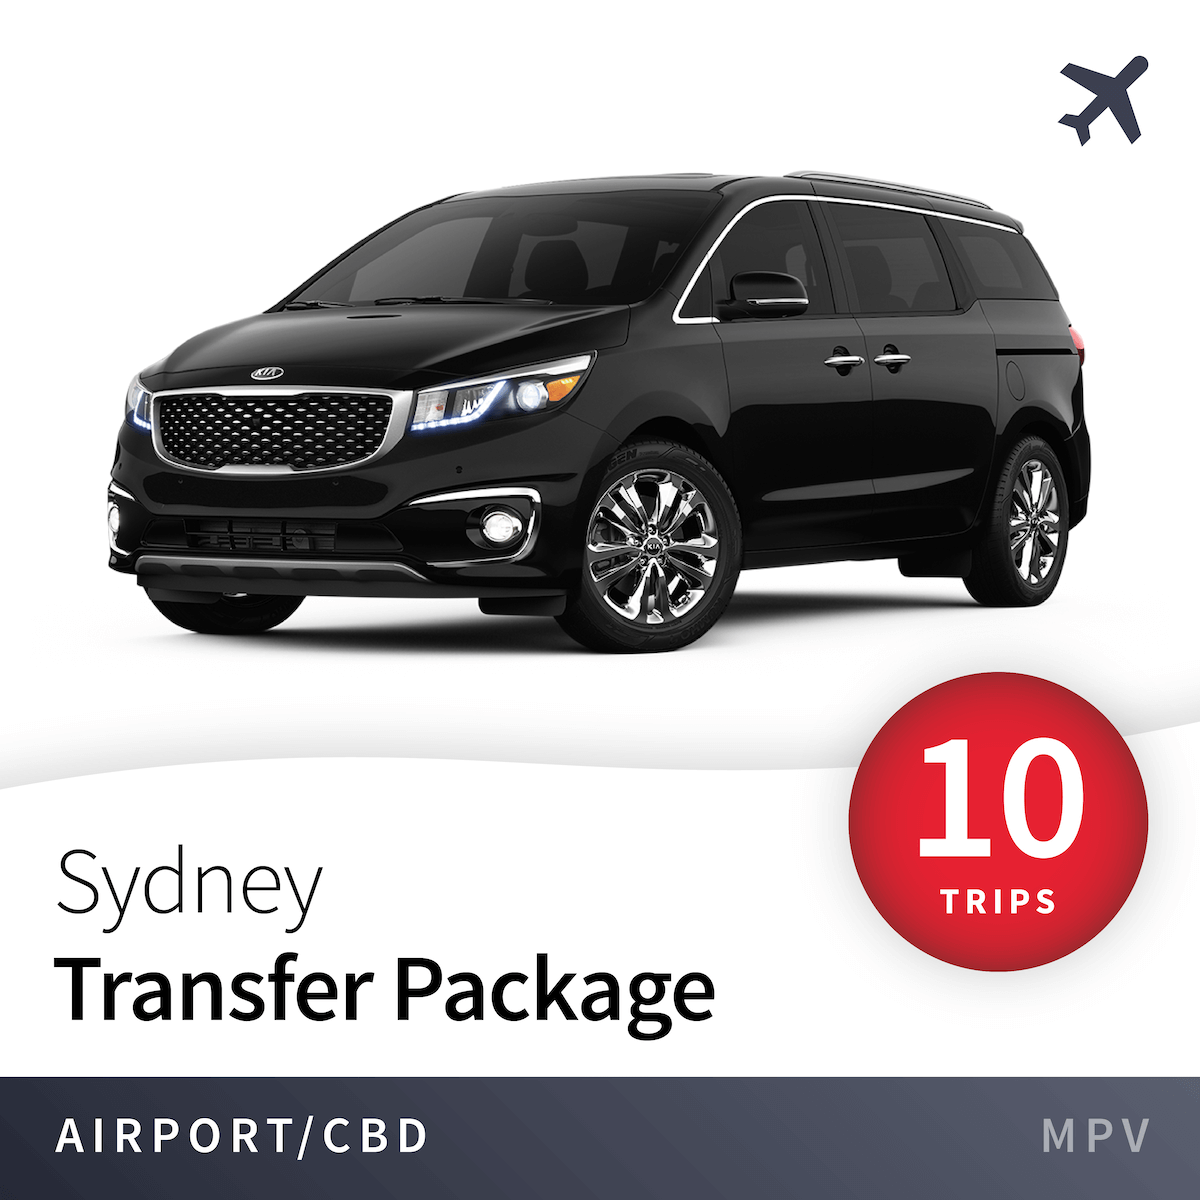 Sydney Airport Transfer Package - MPV (10 Trips) 5